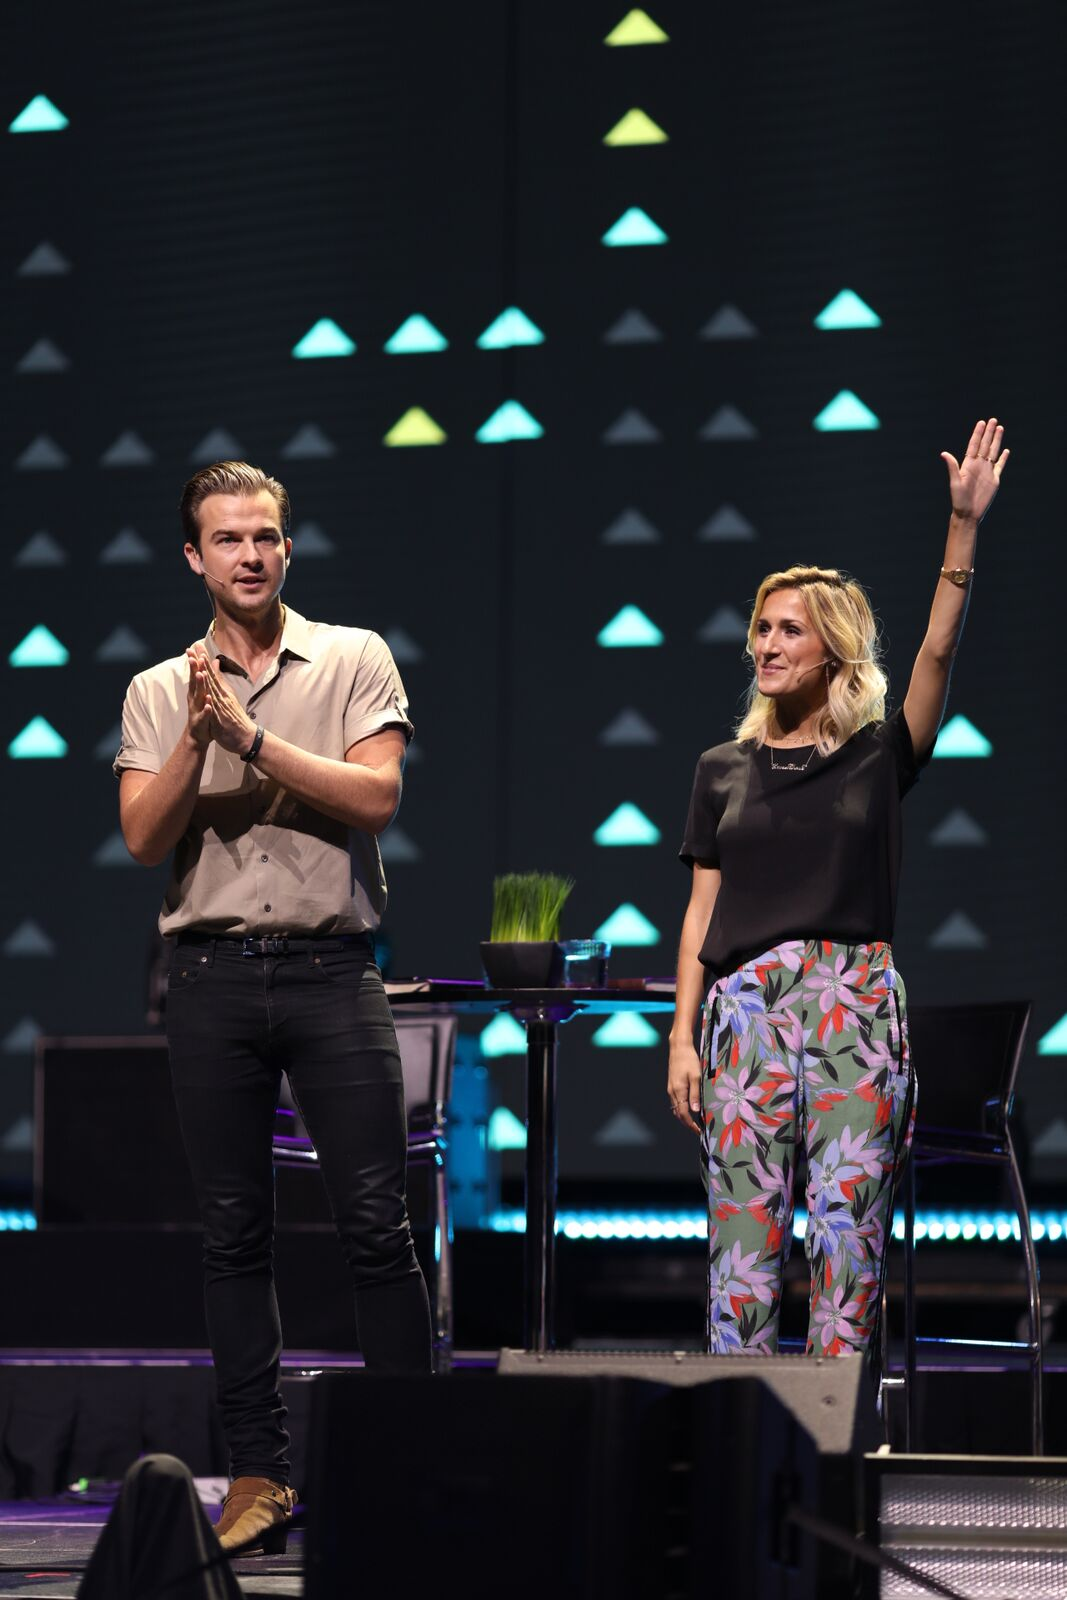 Motion Student Conference Recap by Alabama Lifestyle Blogger Ashley Hodges of AshleyTerk // Rich Wilkerson // DawnChere Wilkerson // Vous Church // Miami Florida // Birmingham Alabama Lifestyle Blogger // Church of the Highlands // Student Conference - What I learned at MOTION Conference 2017 and Review of Speakers featured by popular Los Angeles life and style blogger, Ashley Hodges